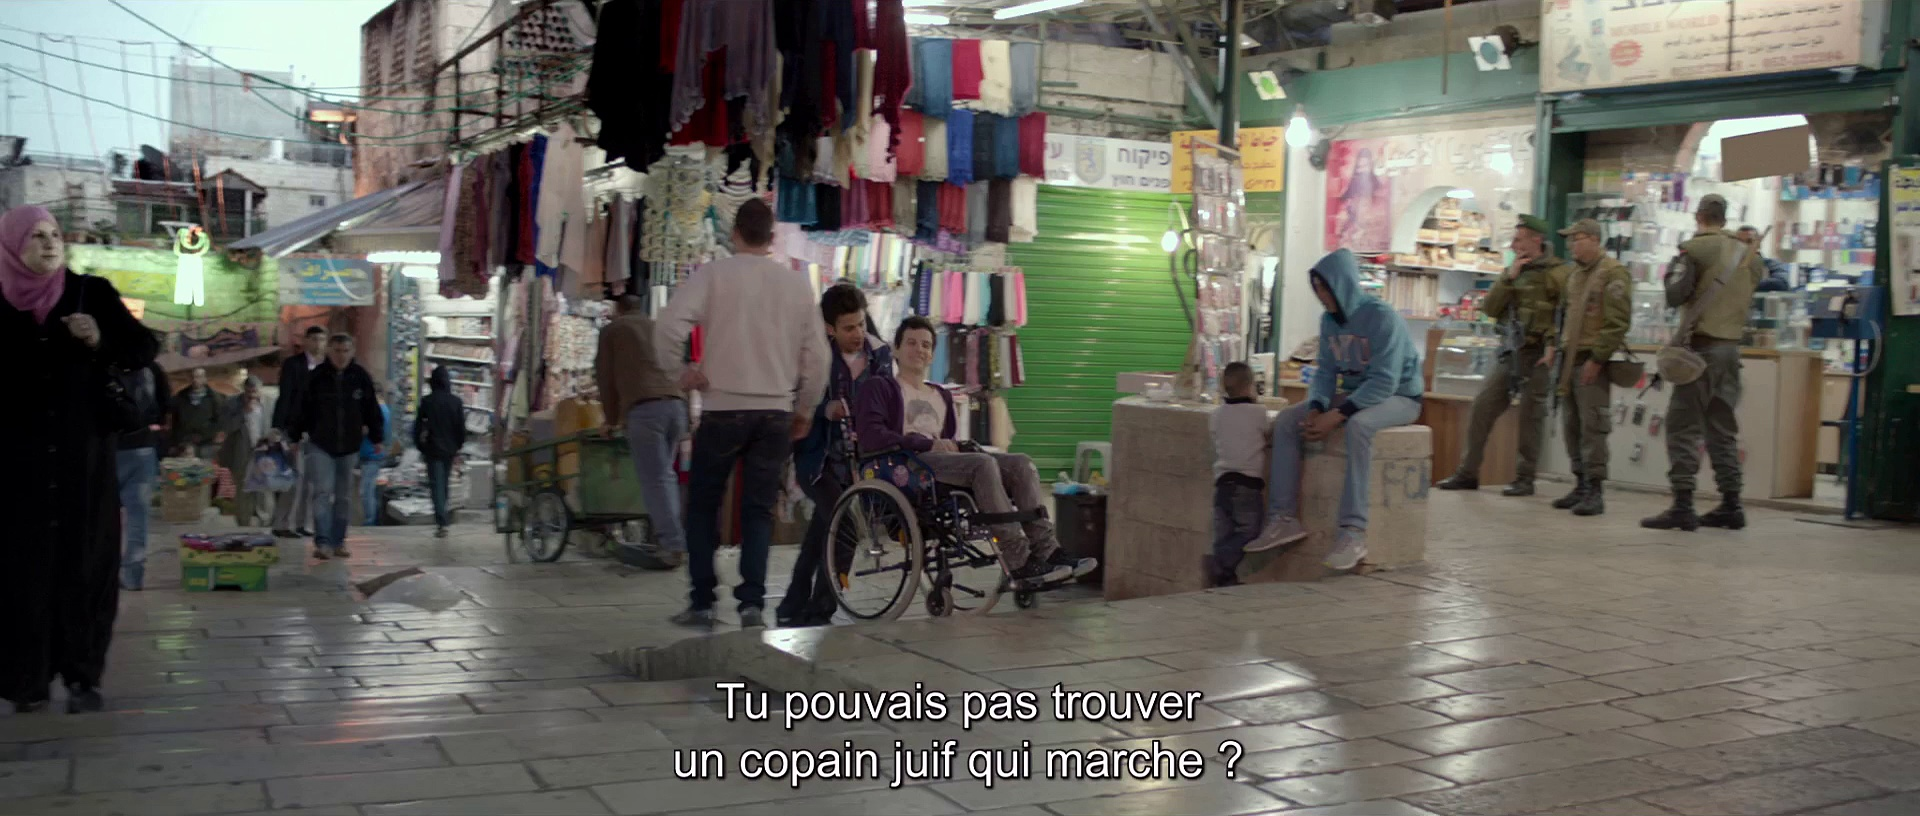 Dancing Arabs / Mon Fils (2015) – Arabic Trailer (french subtitles)